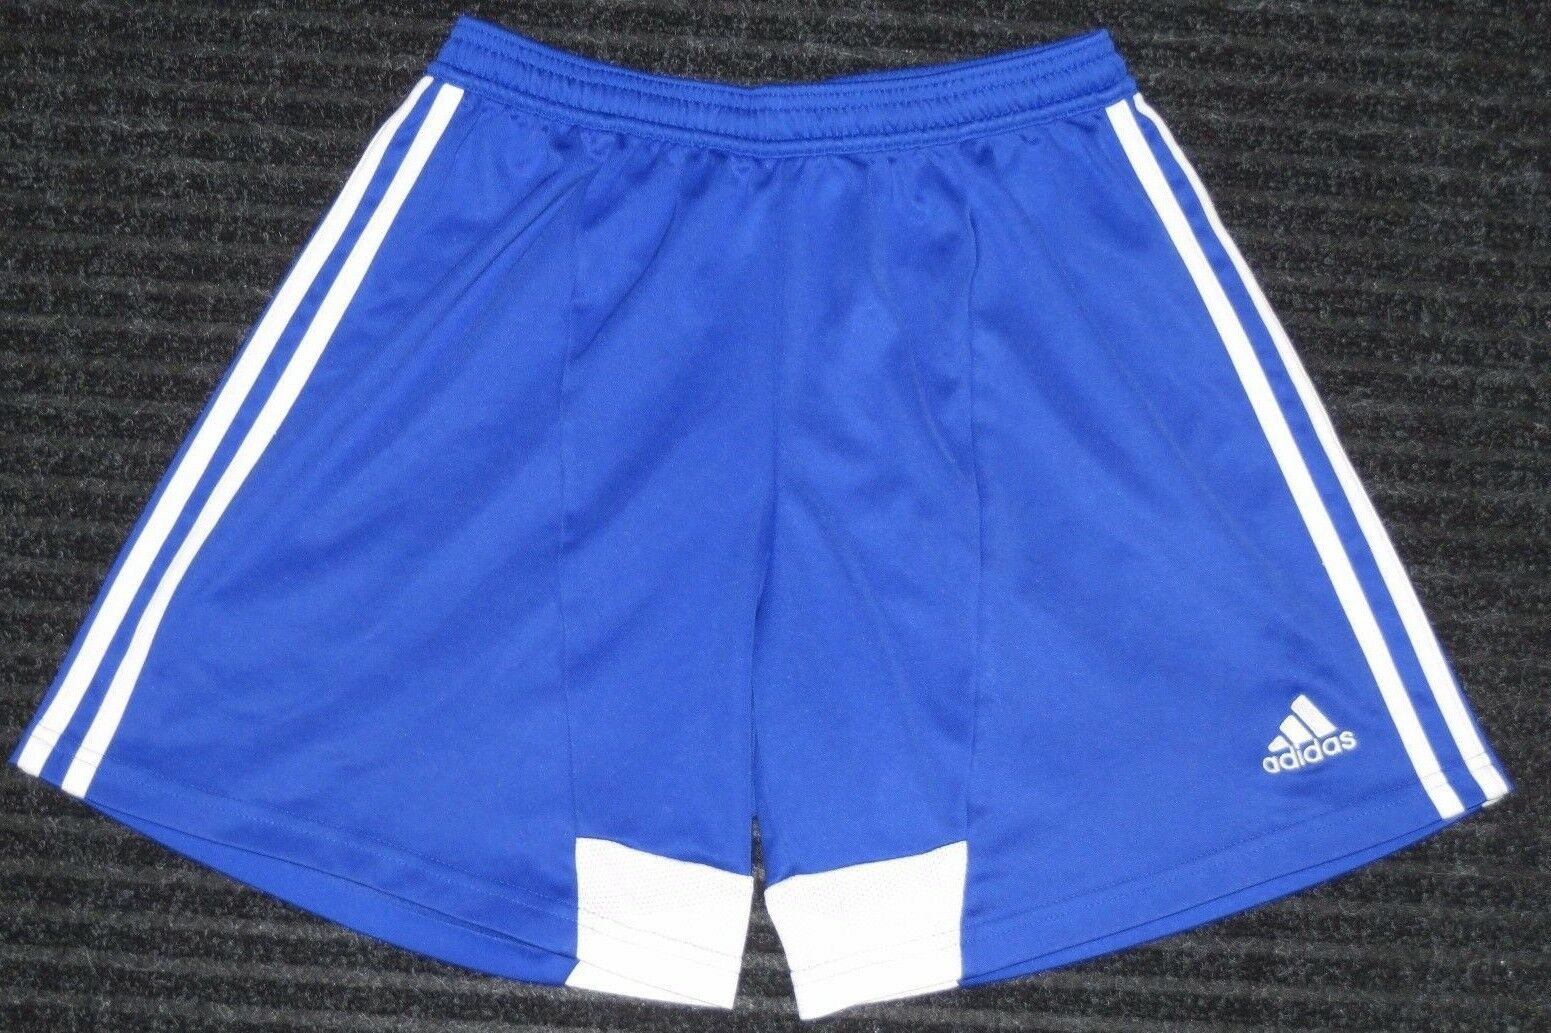 Adidas Climacool Formotion Athletic Fitness Workout Gym Shorts Womens Small bluee